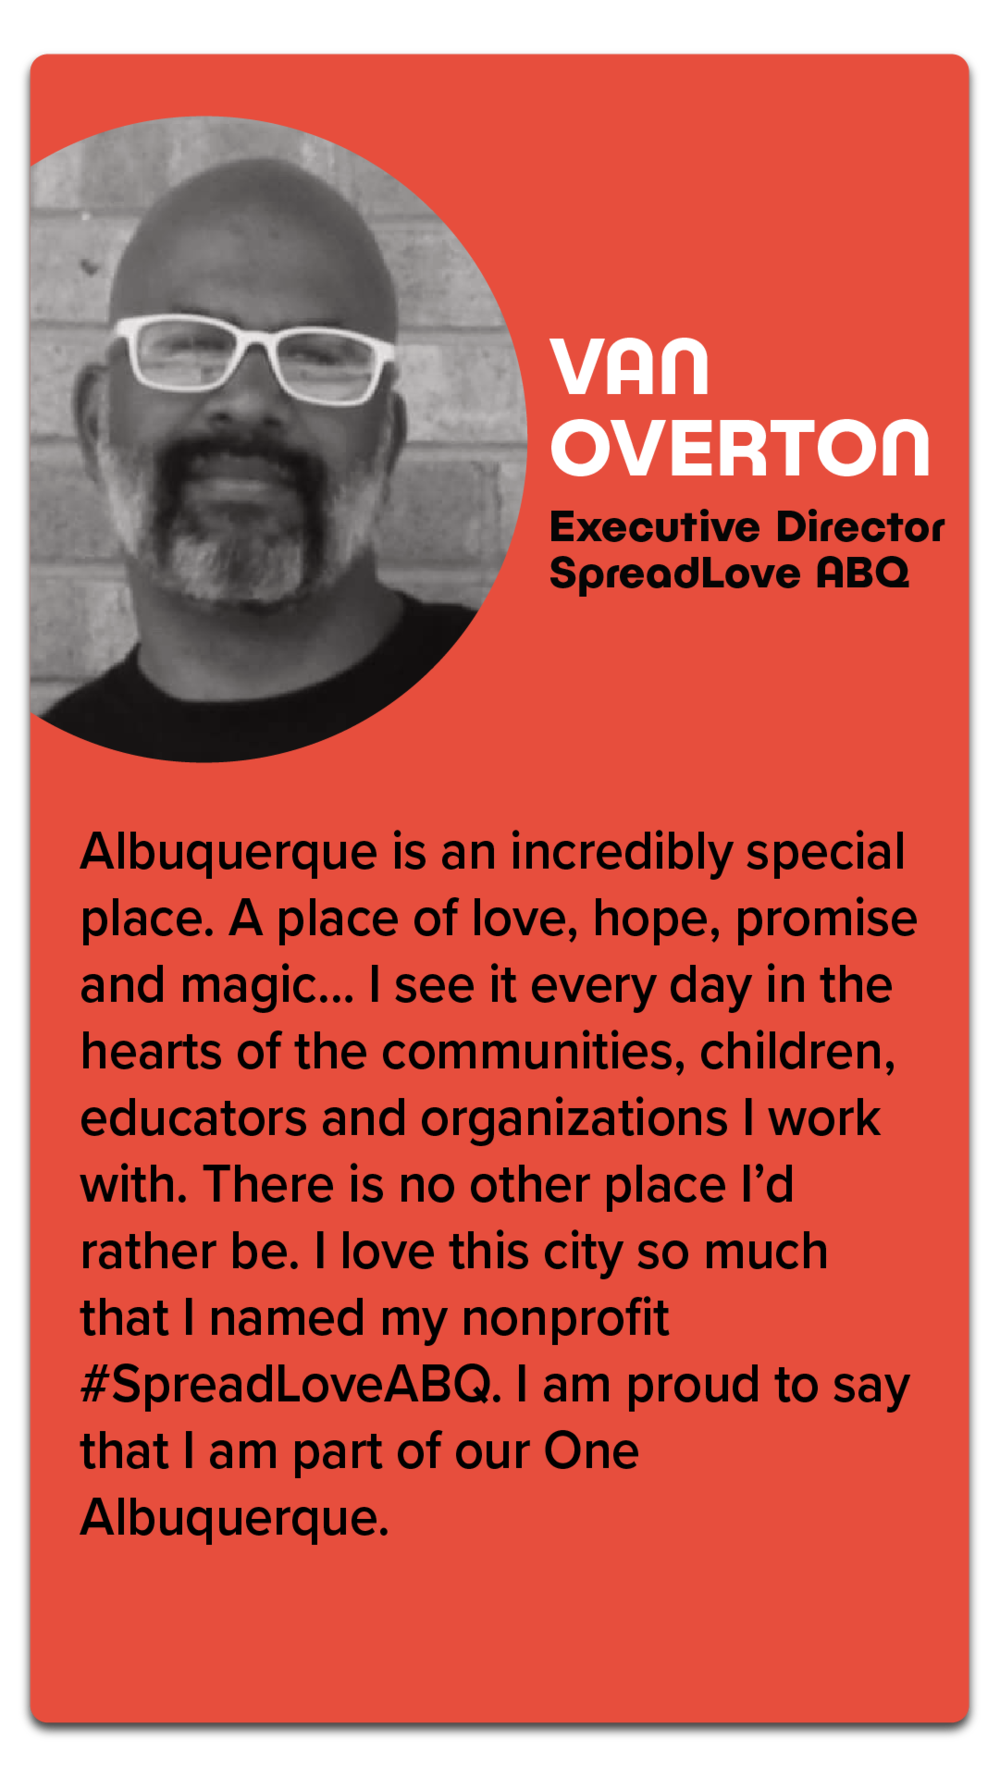 "Van Overton, Executive Director, SpreadLove ABQ  ""Albuquerque is an incredibly special place. A place of love, hope, promise and magic...I see it every day in the hearts of the communities, children, educators and organizations I work with. There is no other place I'd rather be. I love this city so much that I named my nonprofit #SpreadLoveABQ. I am proud to say that I am part of our One Albuquerque."""